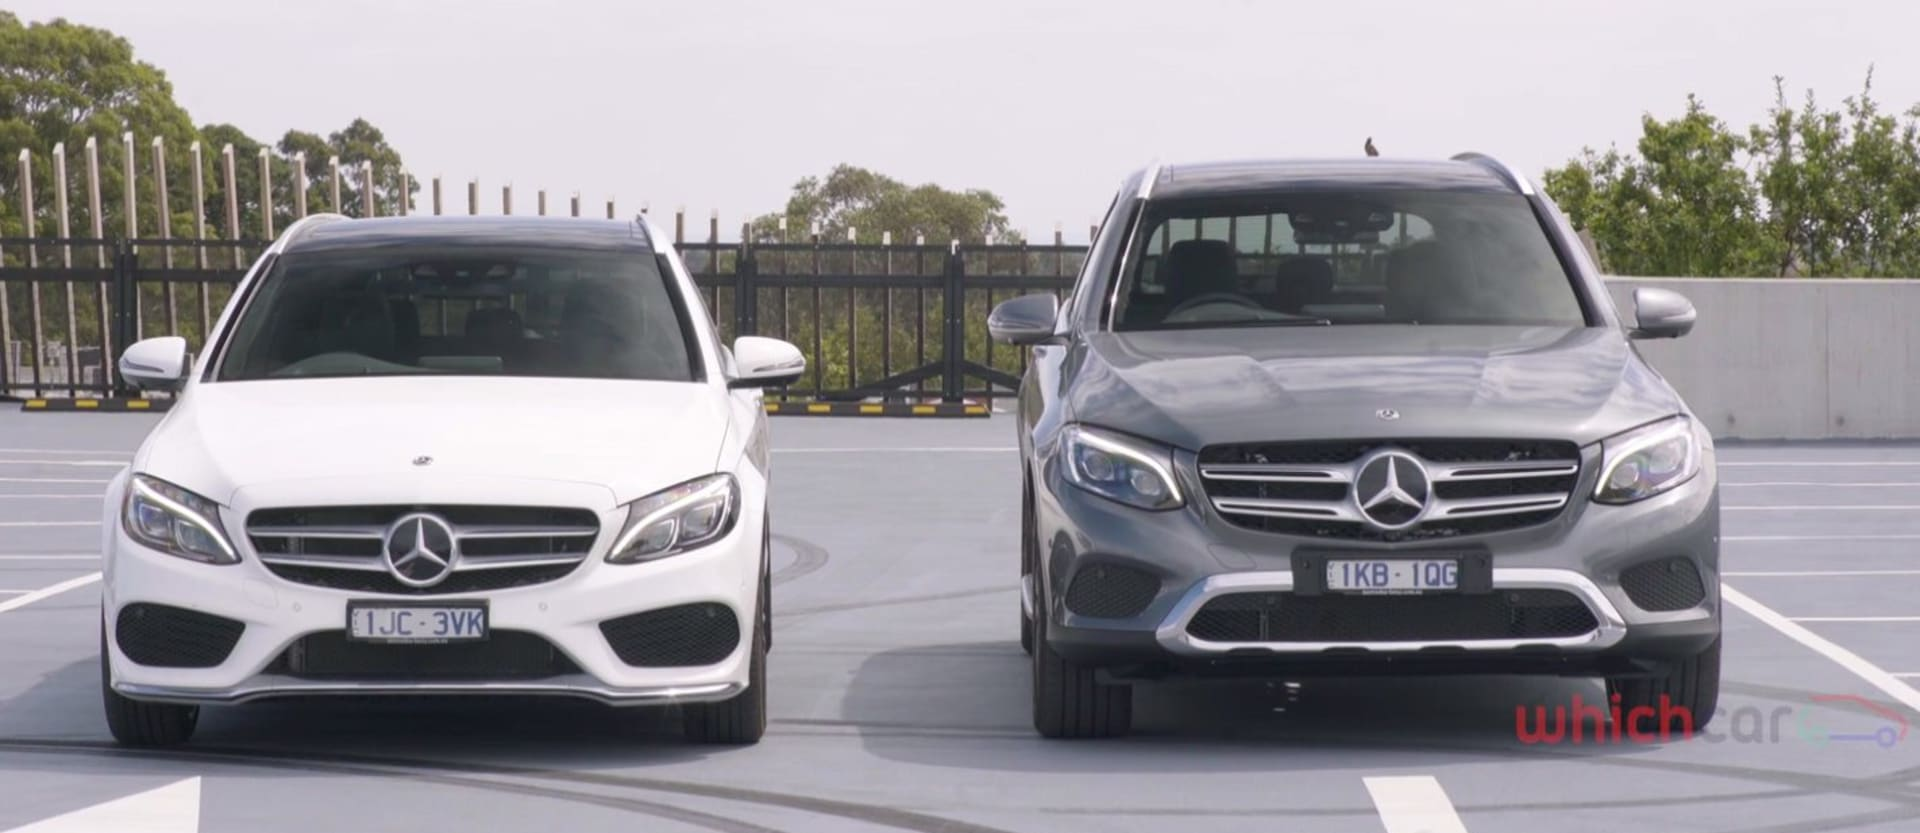 Suv Vs Wagon Mercedes Benz Jpg